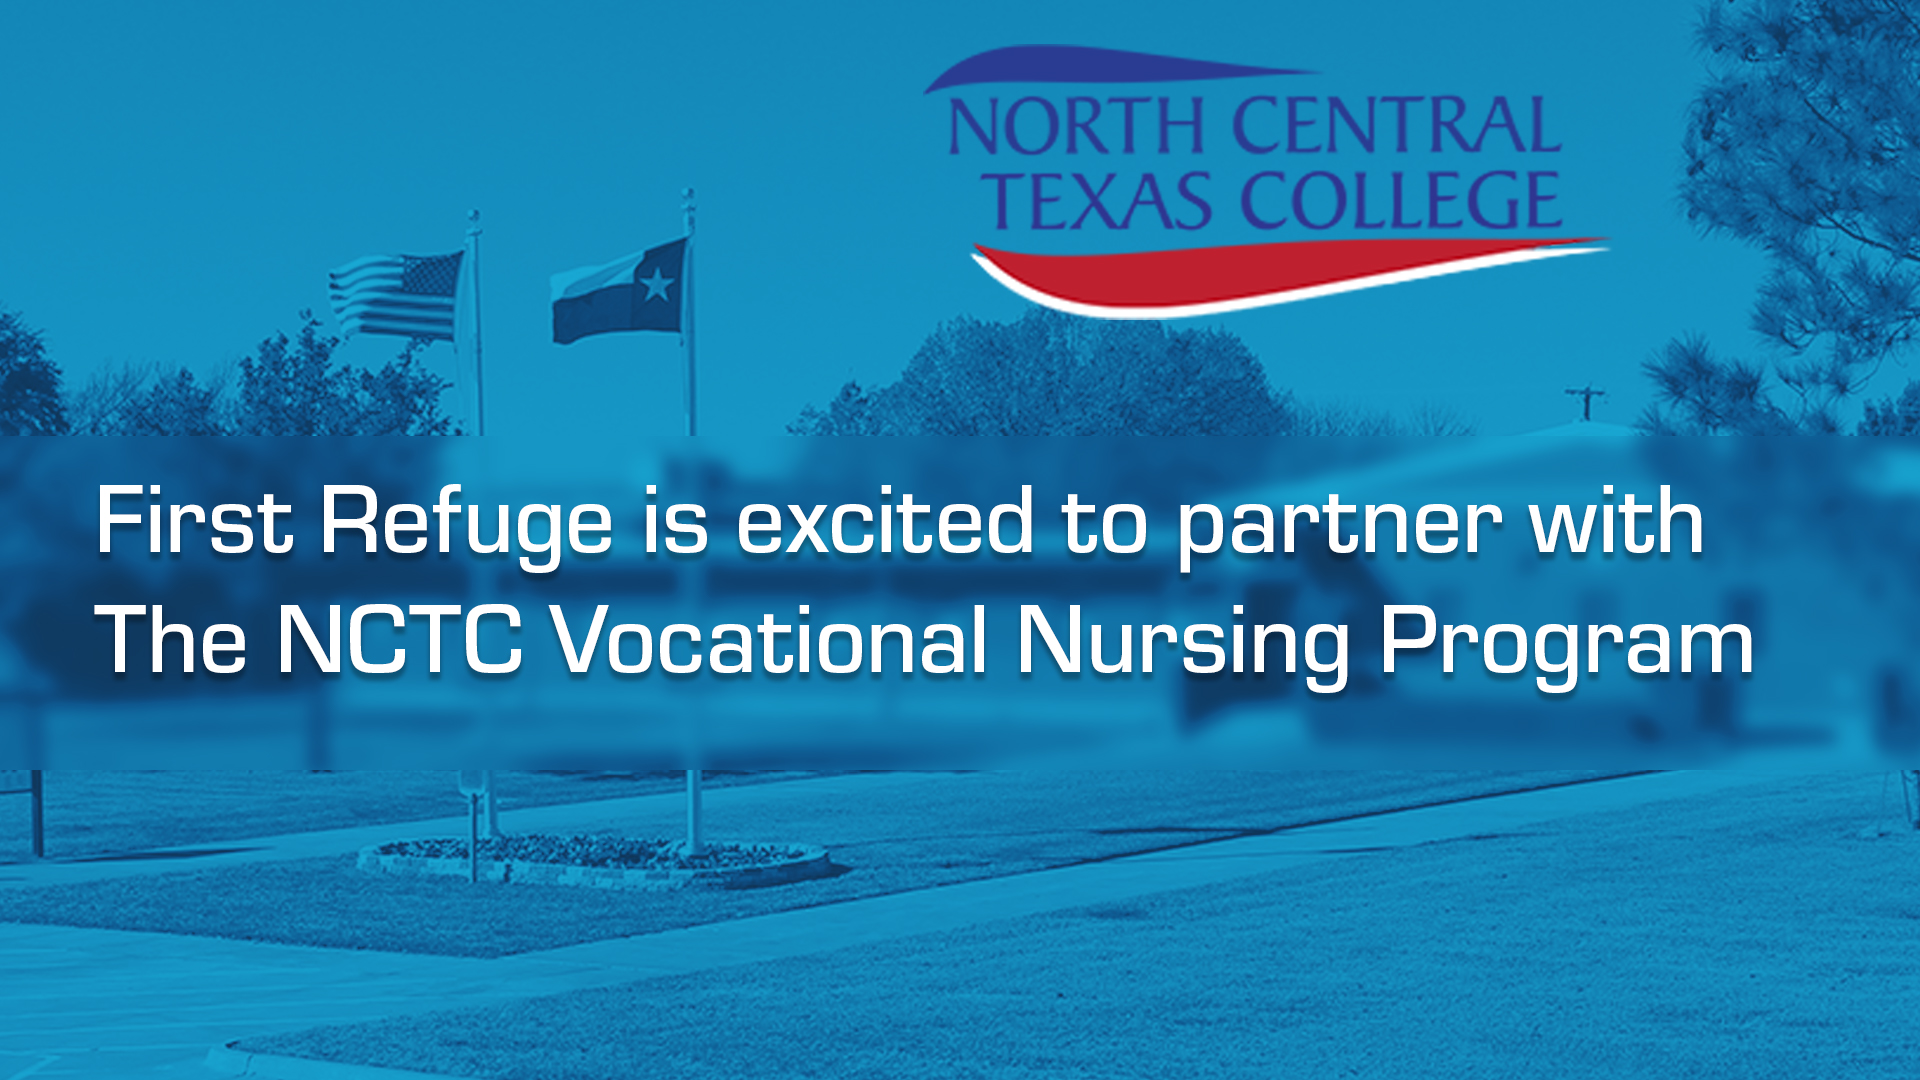 NCTC Partnership.jpg